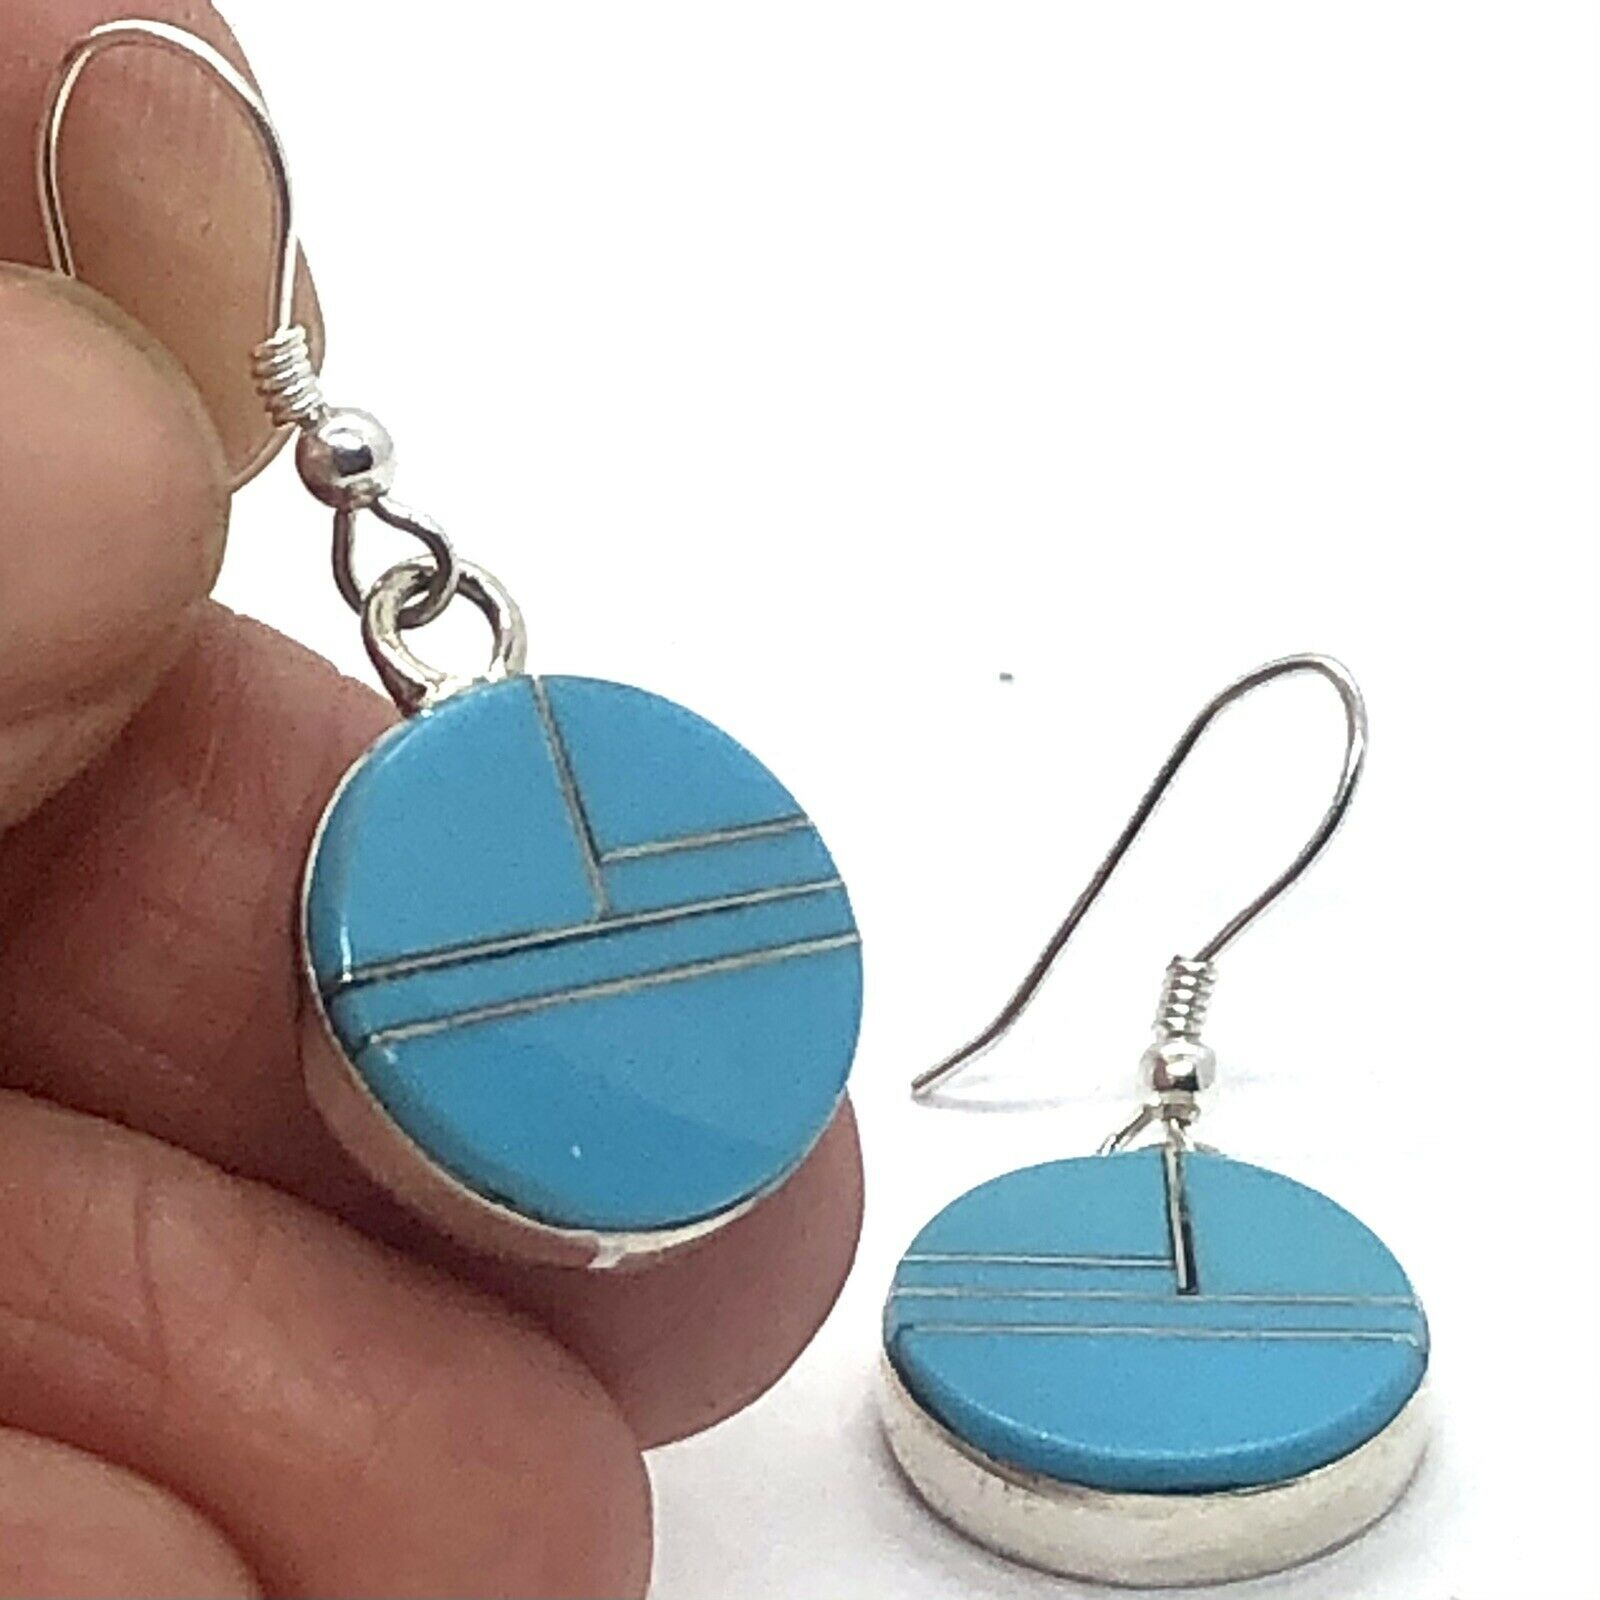 Round Zuni Turquoise Earrings Hook Inlay Sterling… - image 2